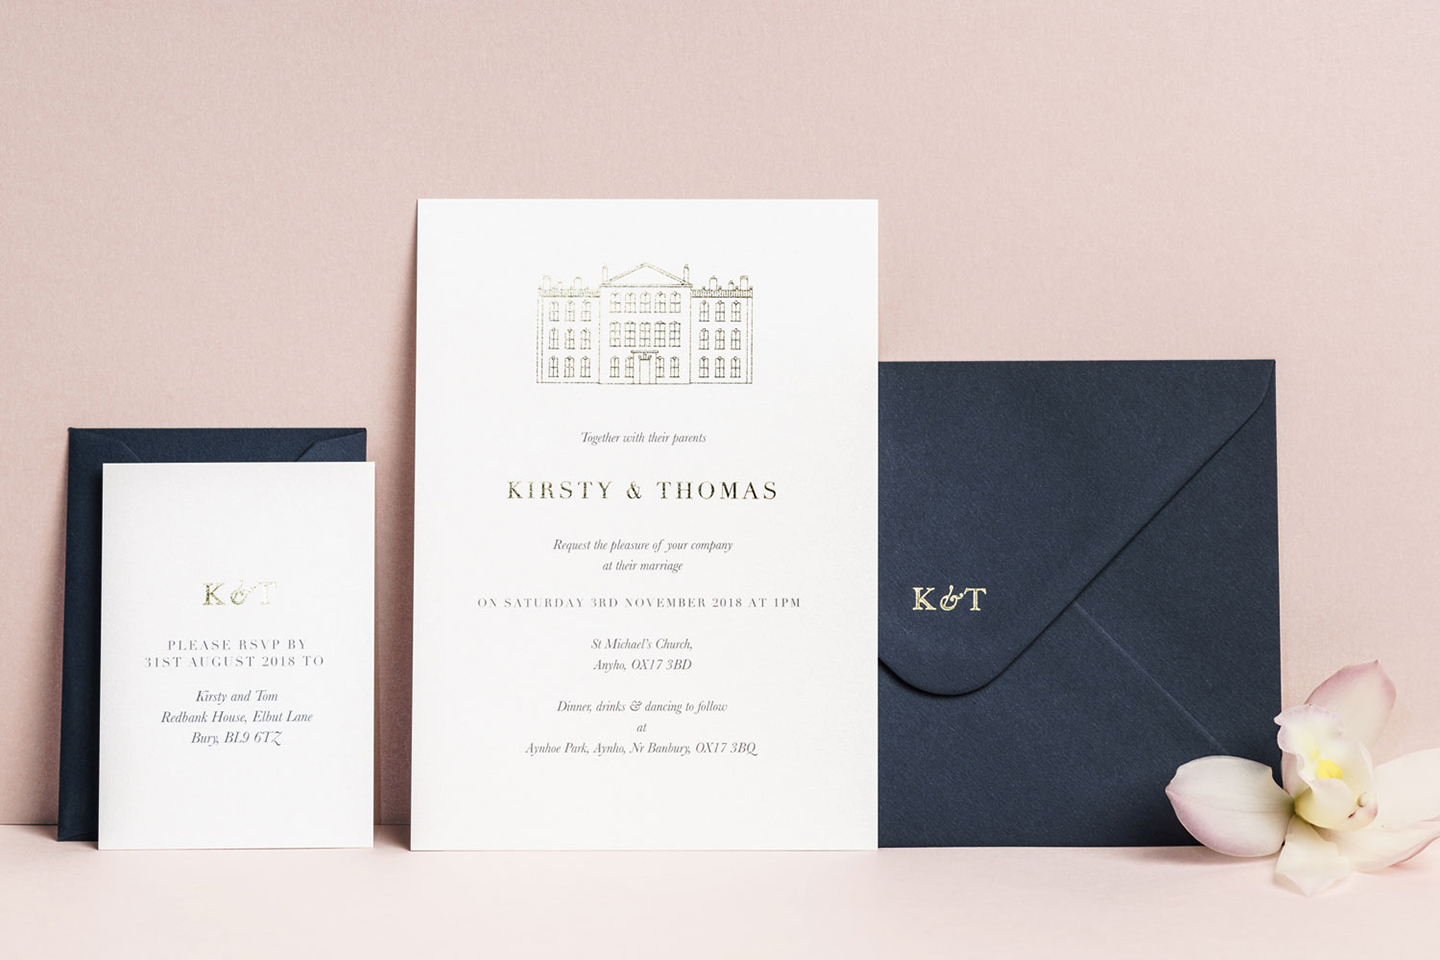 Modern Venue Illustration Invitation with Foil Pressed envelopes and matching RSVP Cards | Top Wedding Stationery Trends 2020 | Foil Invite Company Blog